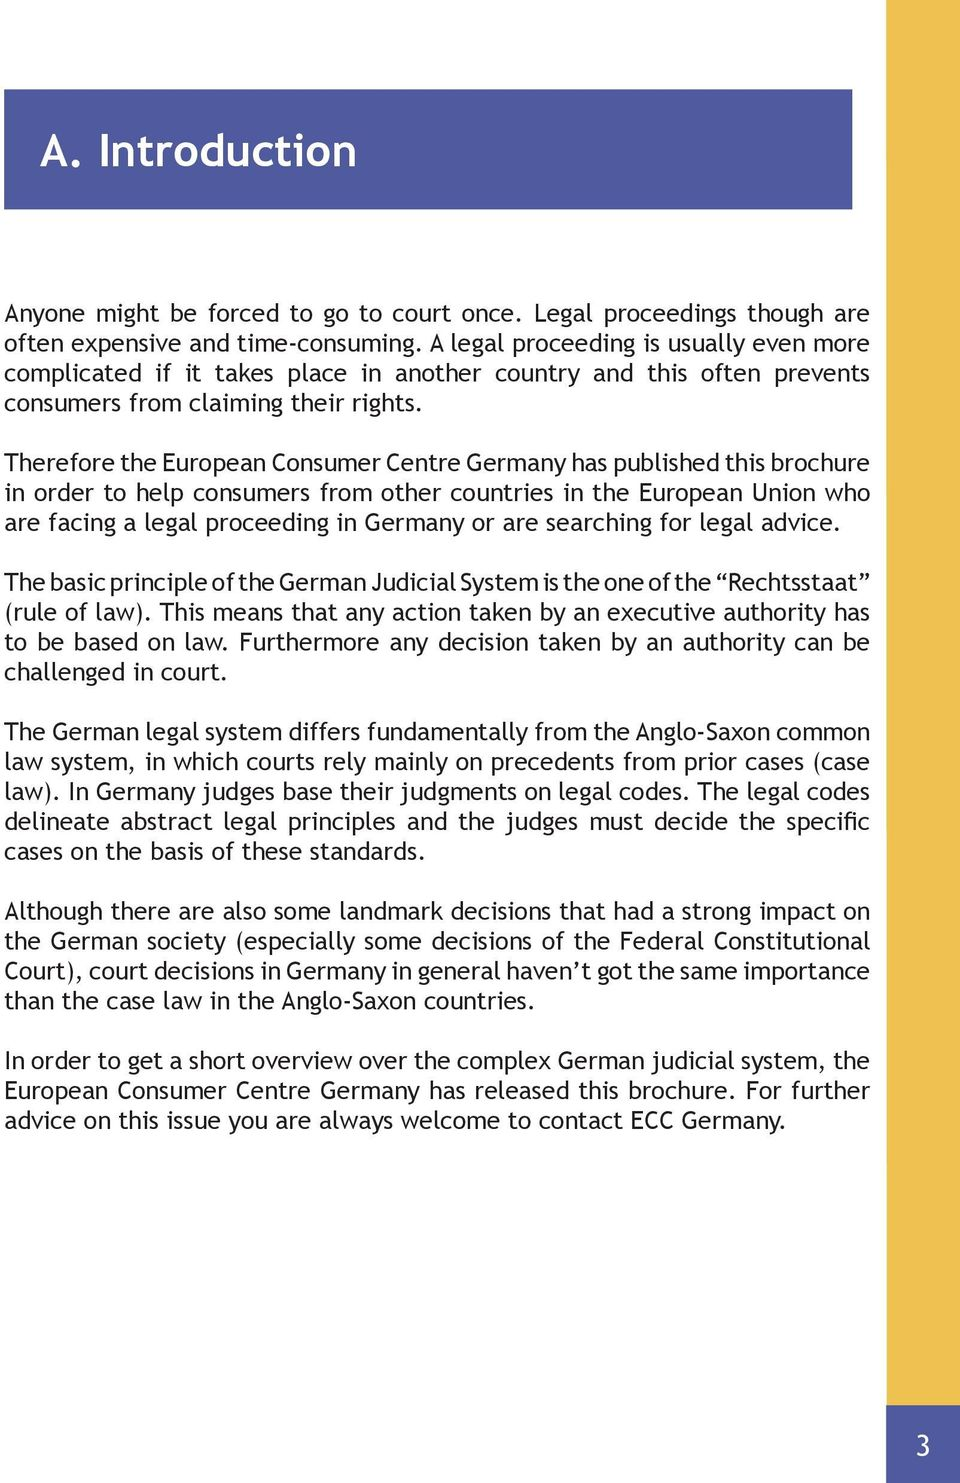 Therefore the European Consumer Centre Germany has published this brochure in order to help consumers from other countries in the European Union who are facing a legal proceeding in Germany or are